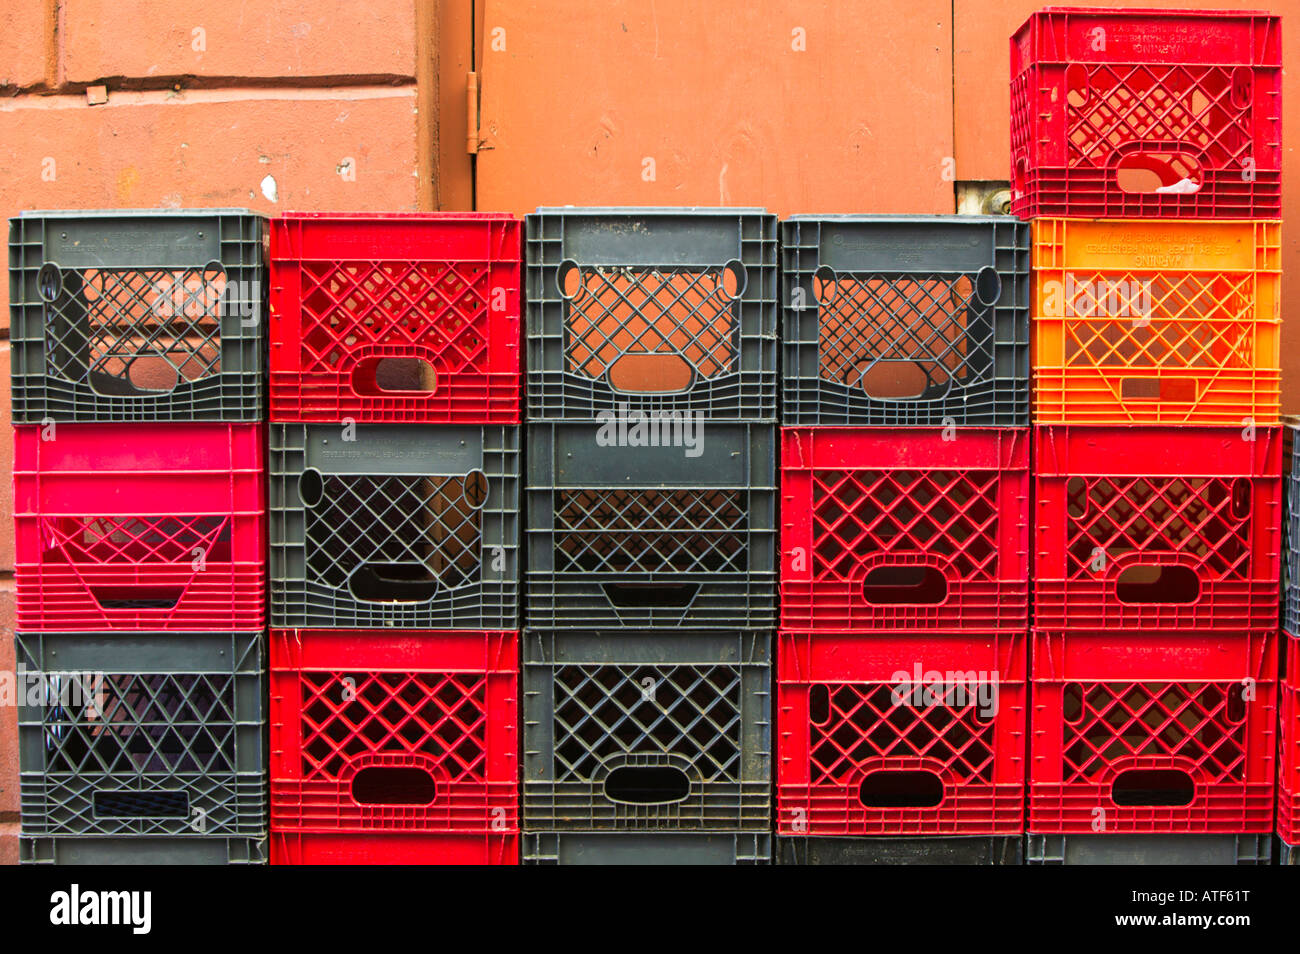 Image result for stack of milk crates